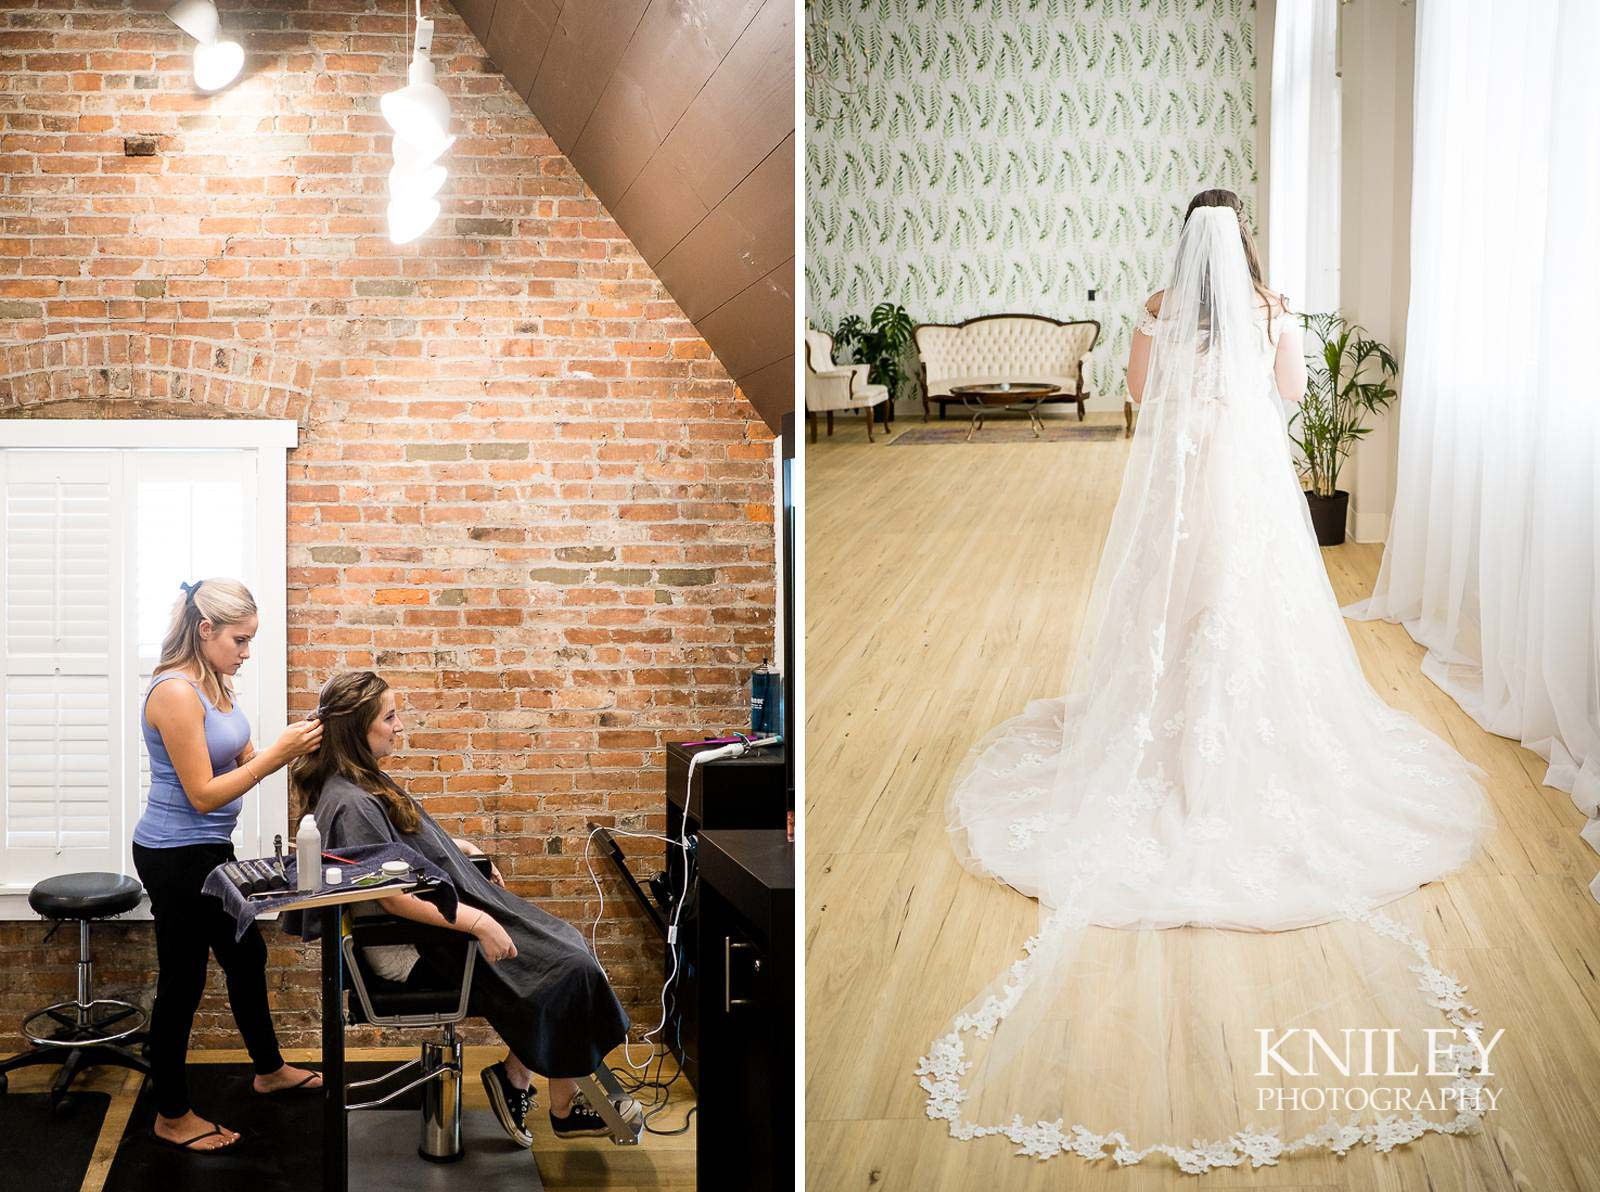 06-Ape-and-Canary-on-Strathallan-wedding-getting-ready-Rochester-NY-Wedding-Photography.jpg